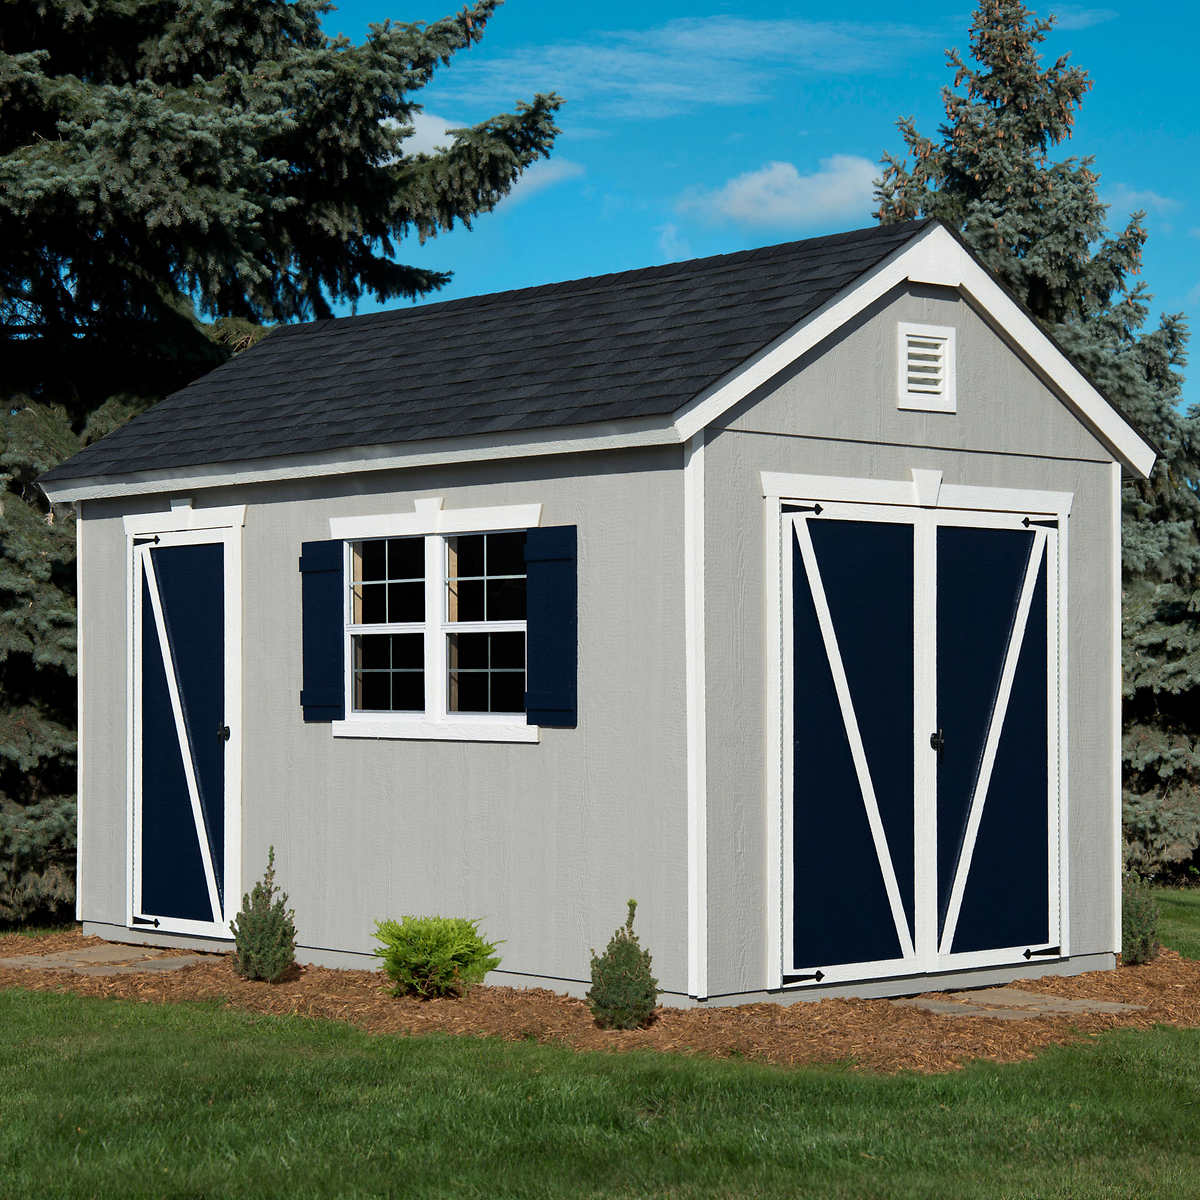 Garden Sheds South Florida sheds & barns | costco